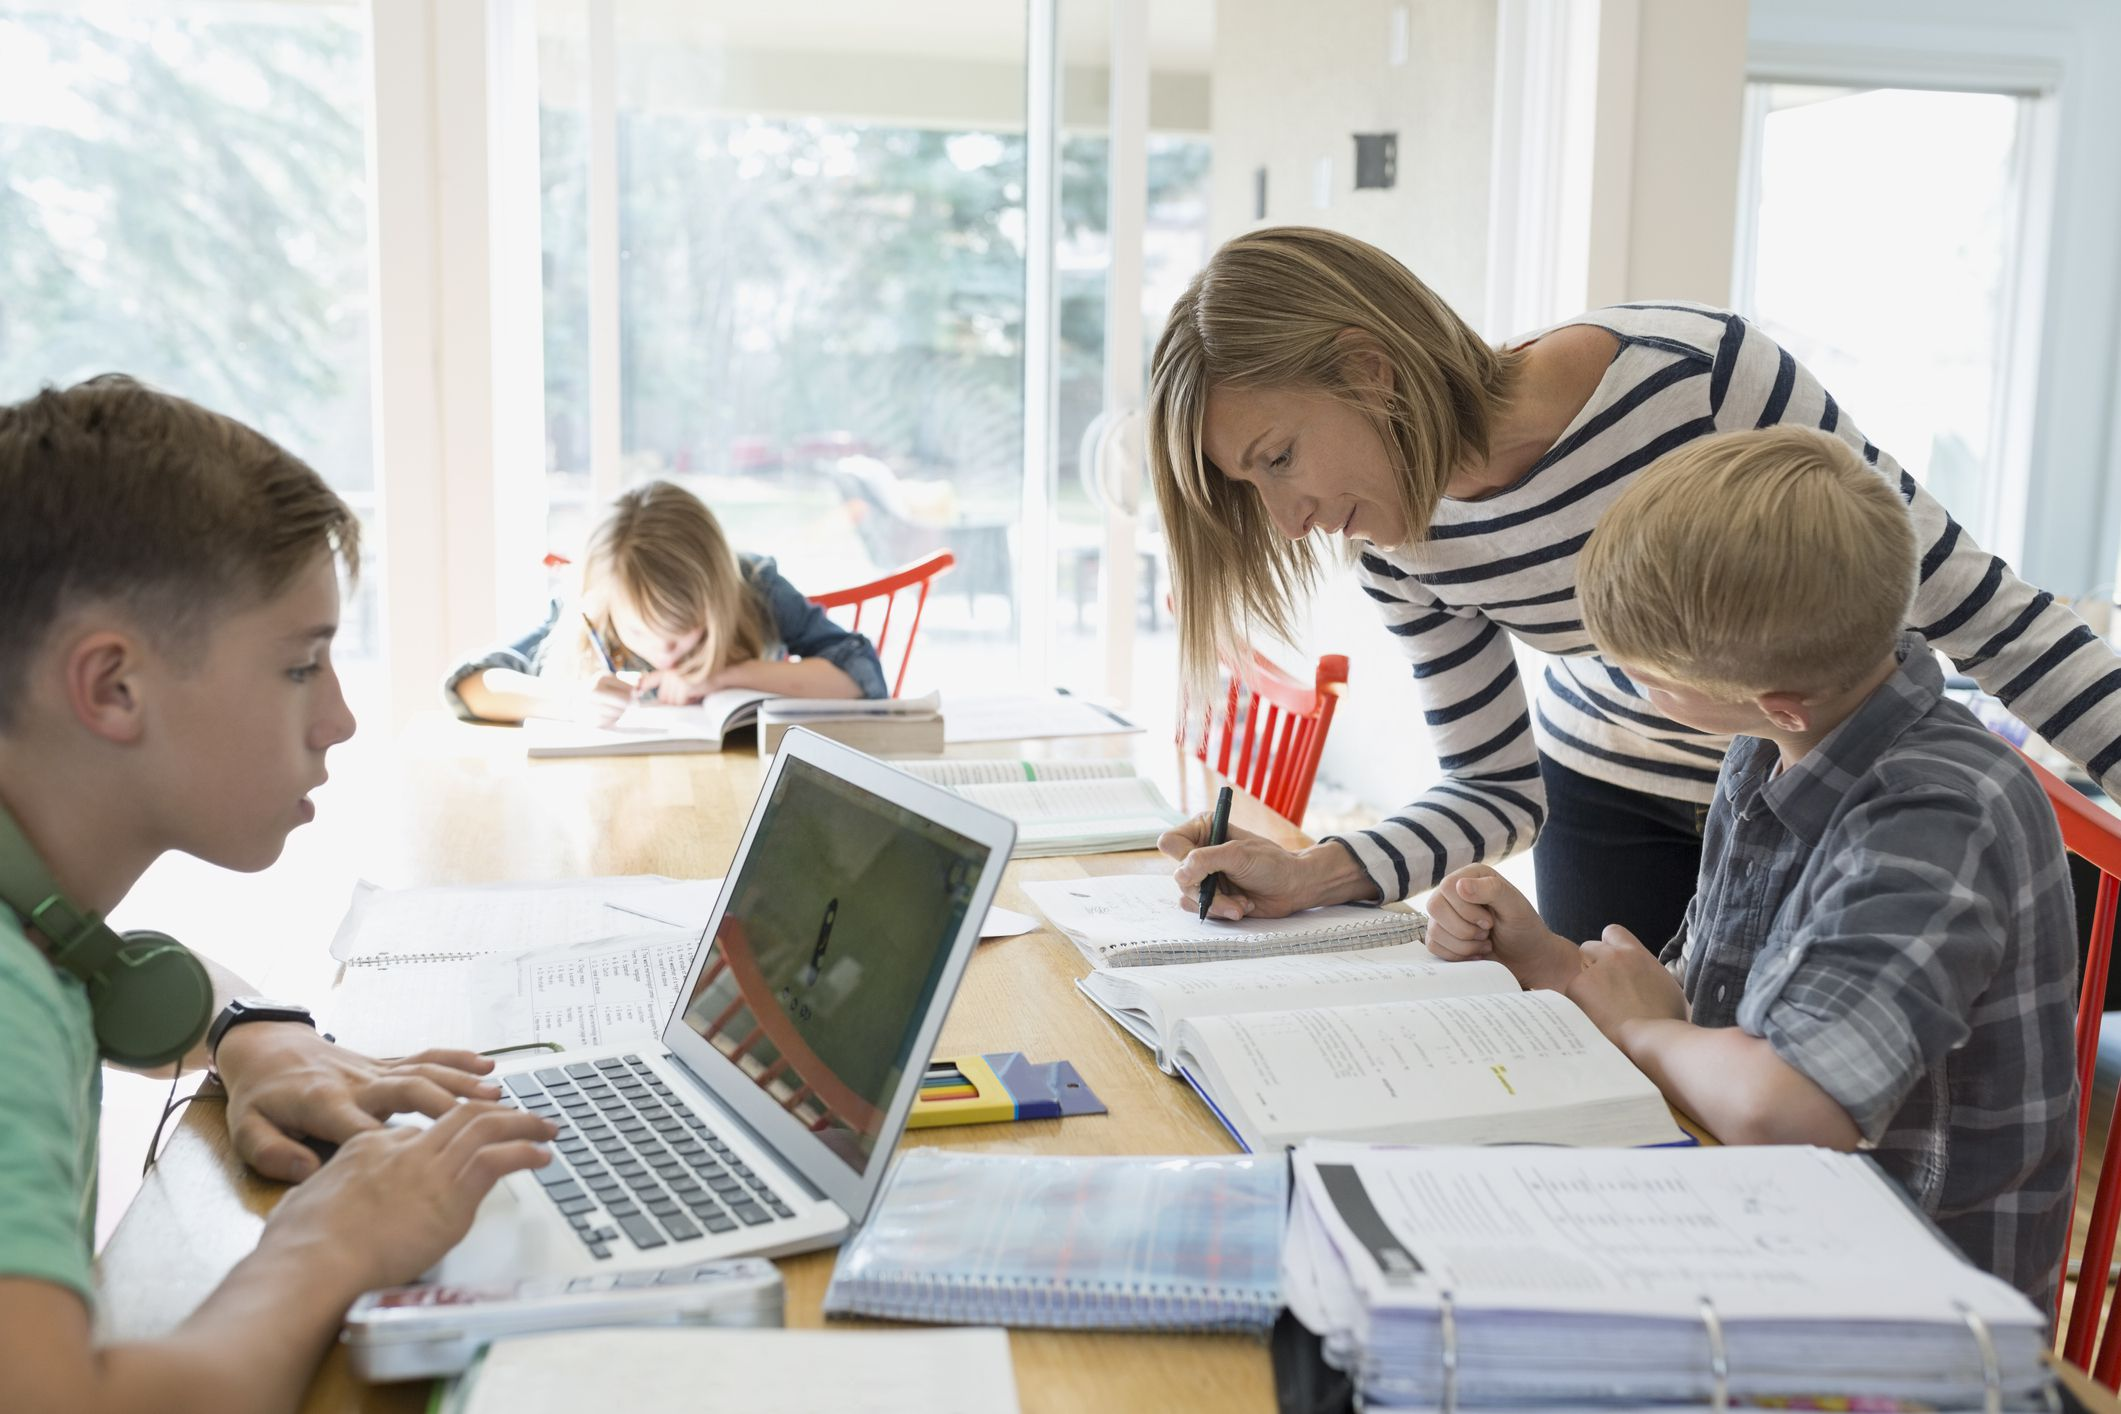 Tips for Managing Homework Time in a Big Family